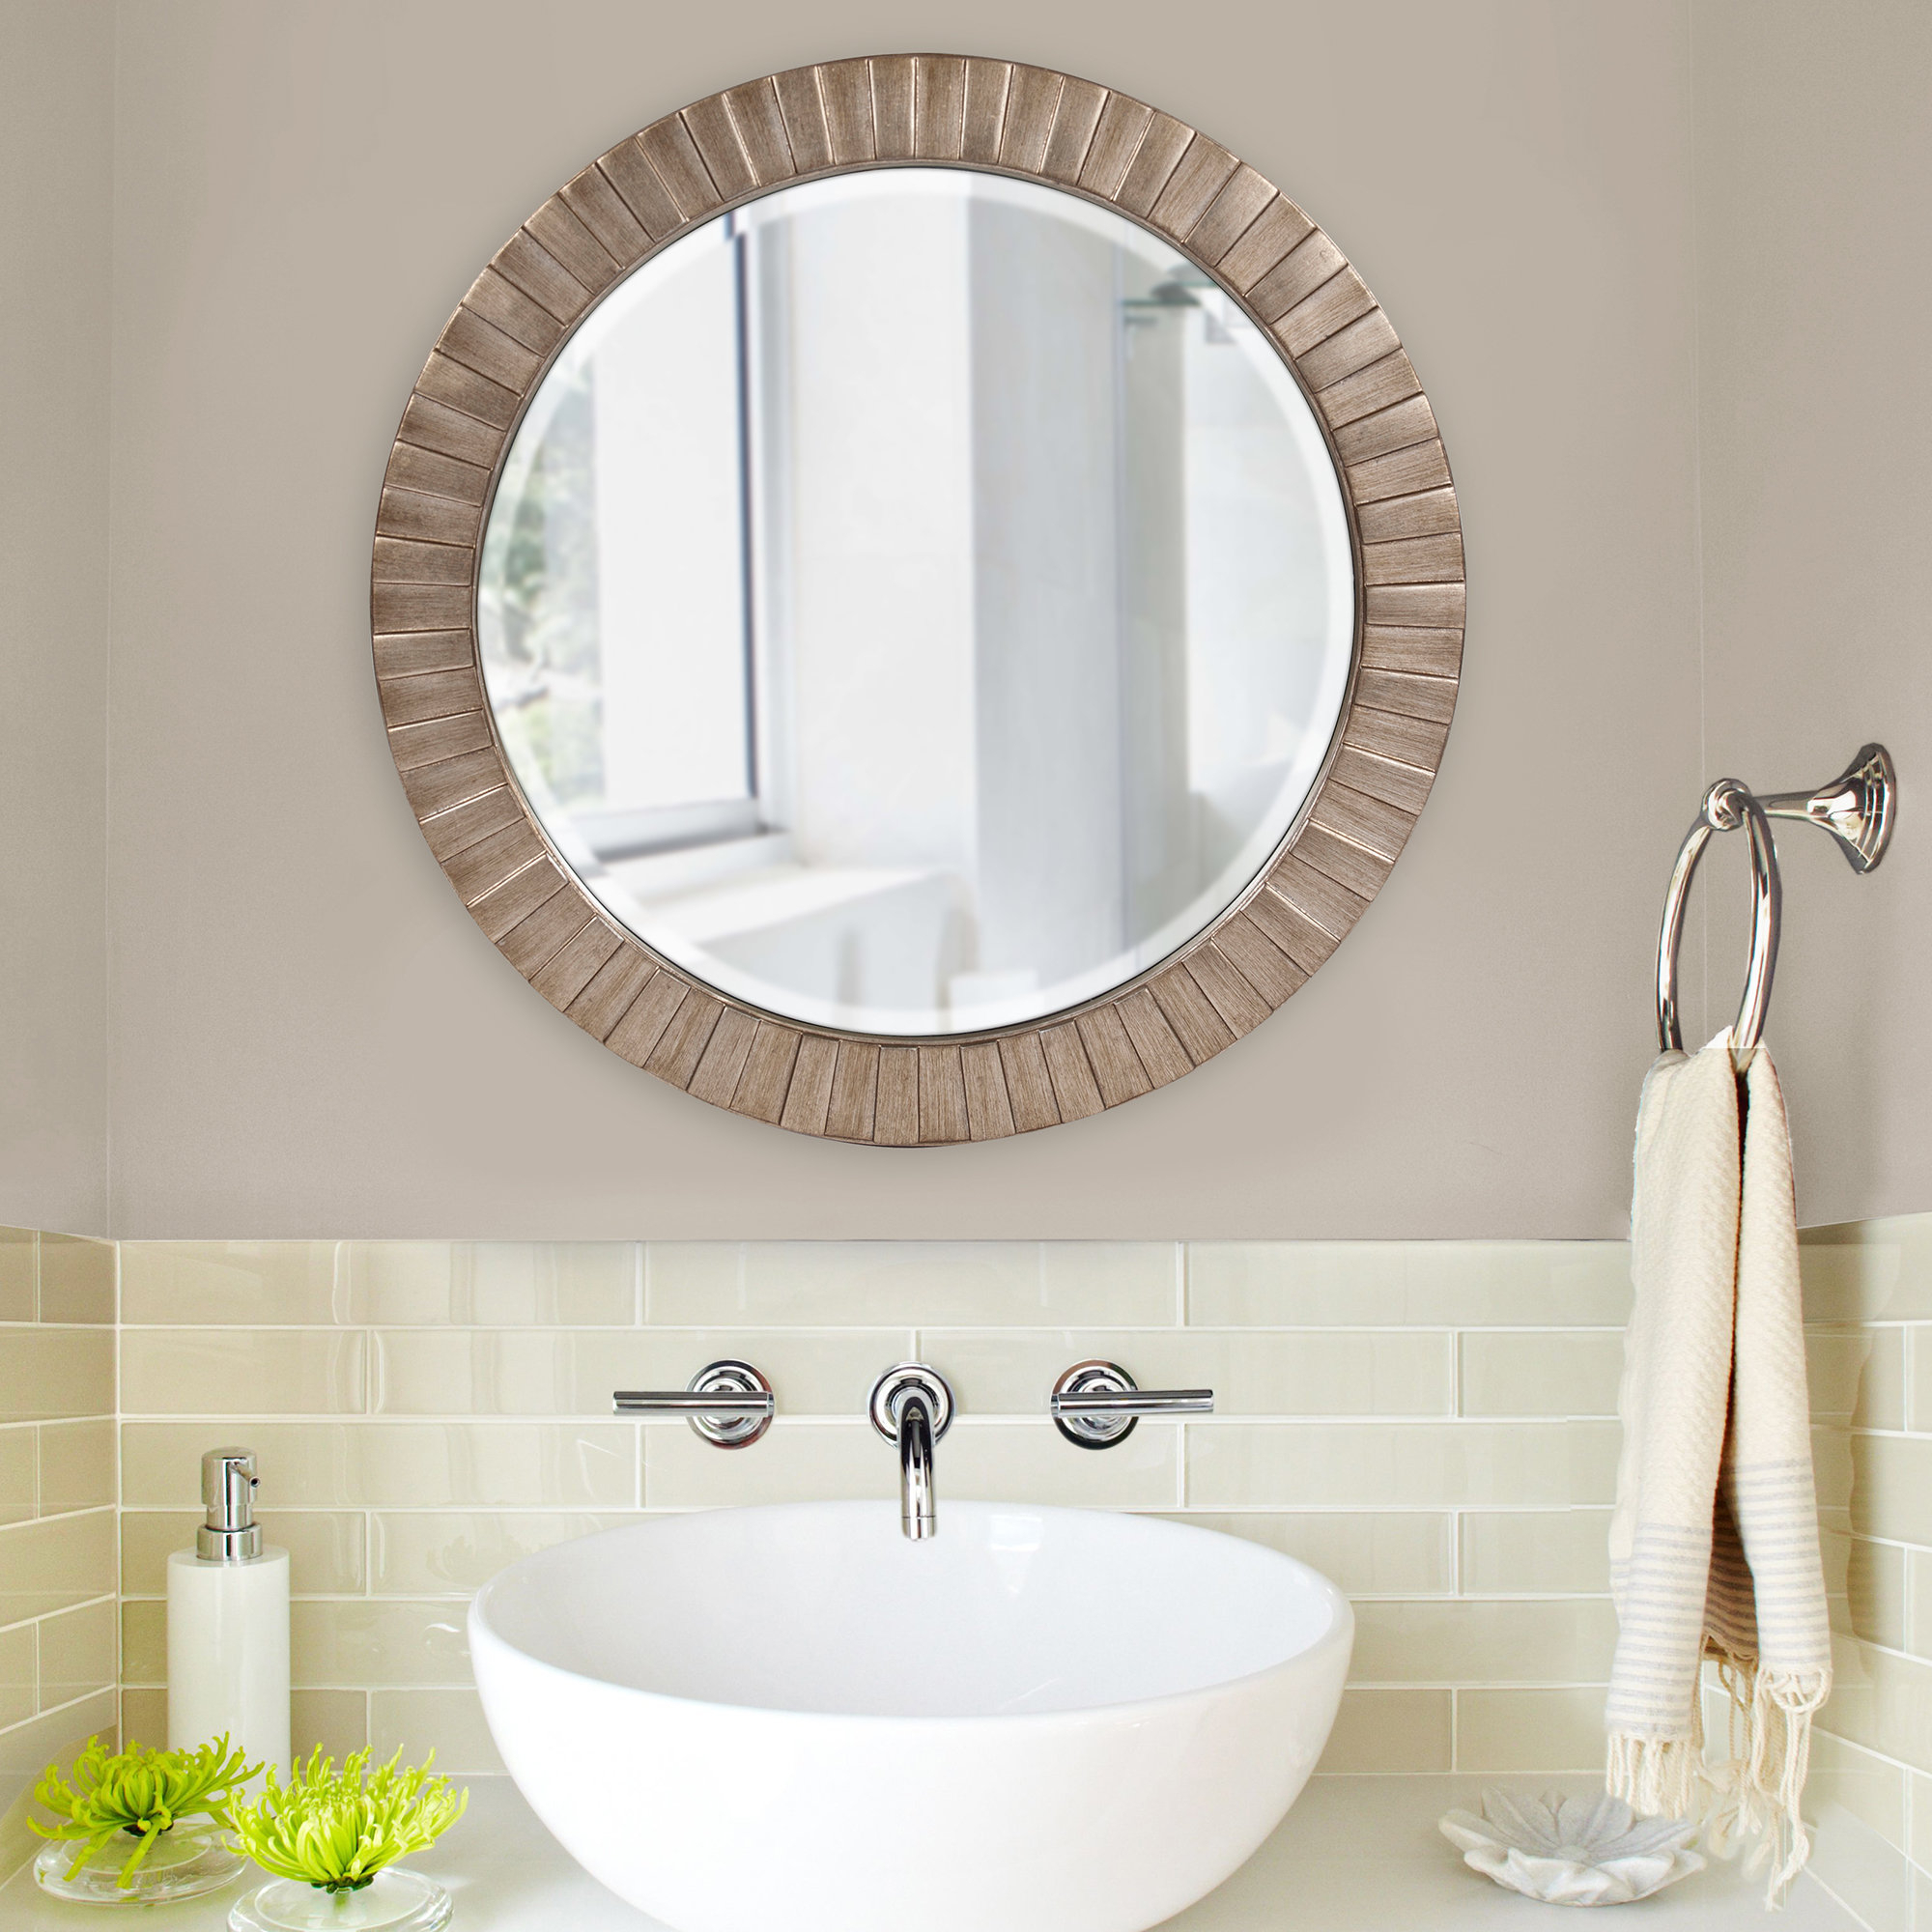 Labarge Accent Mirror & Reviews | Joss & Main Intended For Charters Towers Accent Mirrors (Image 13 of 20)